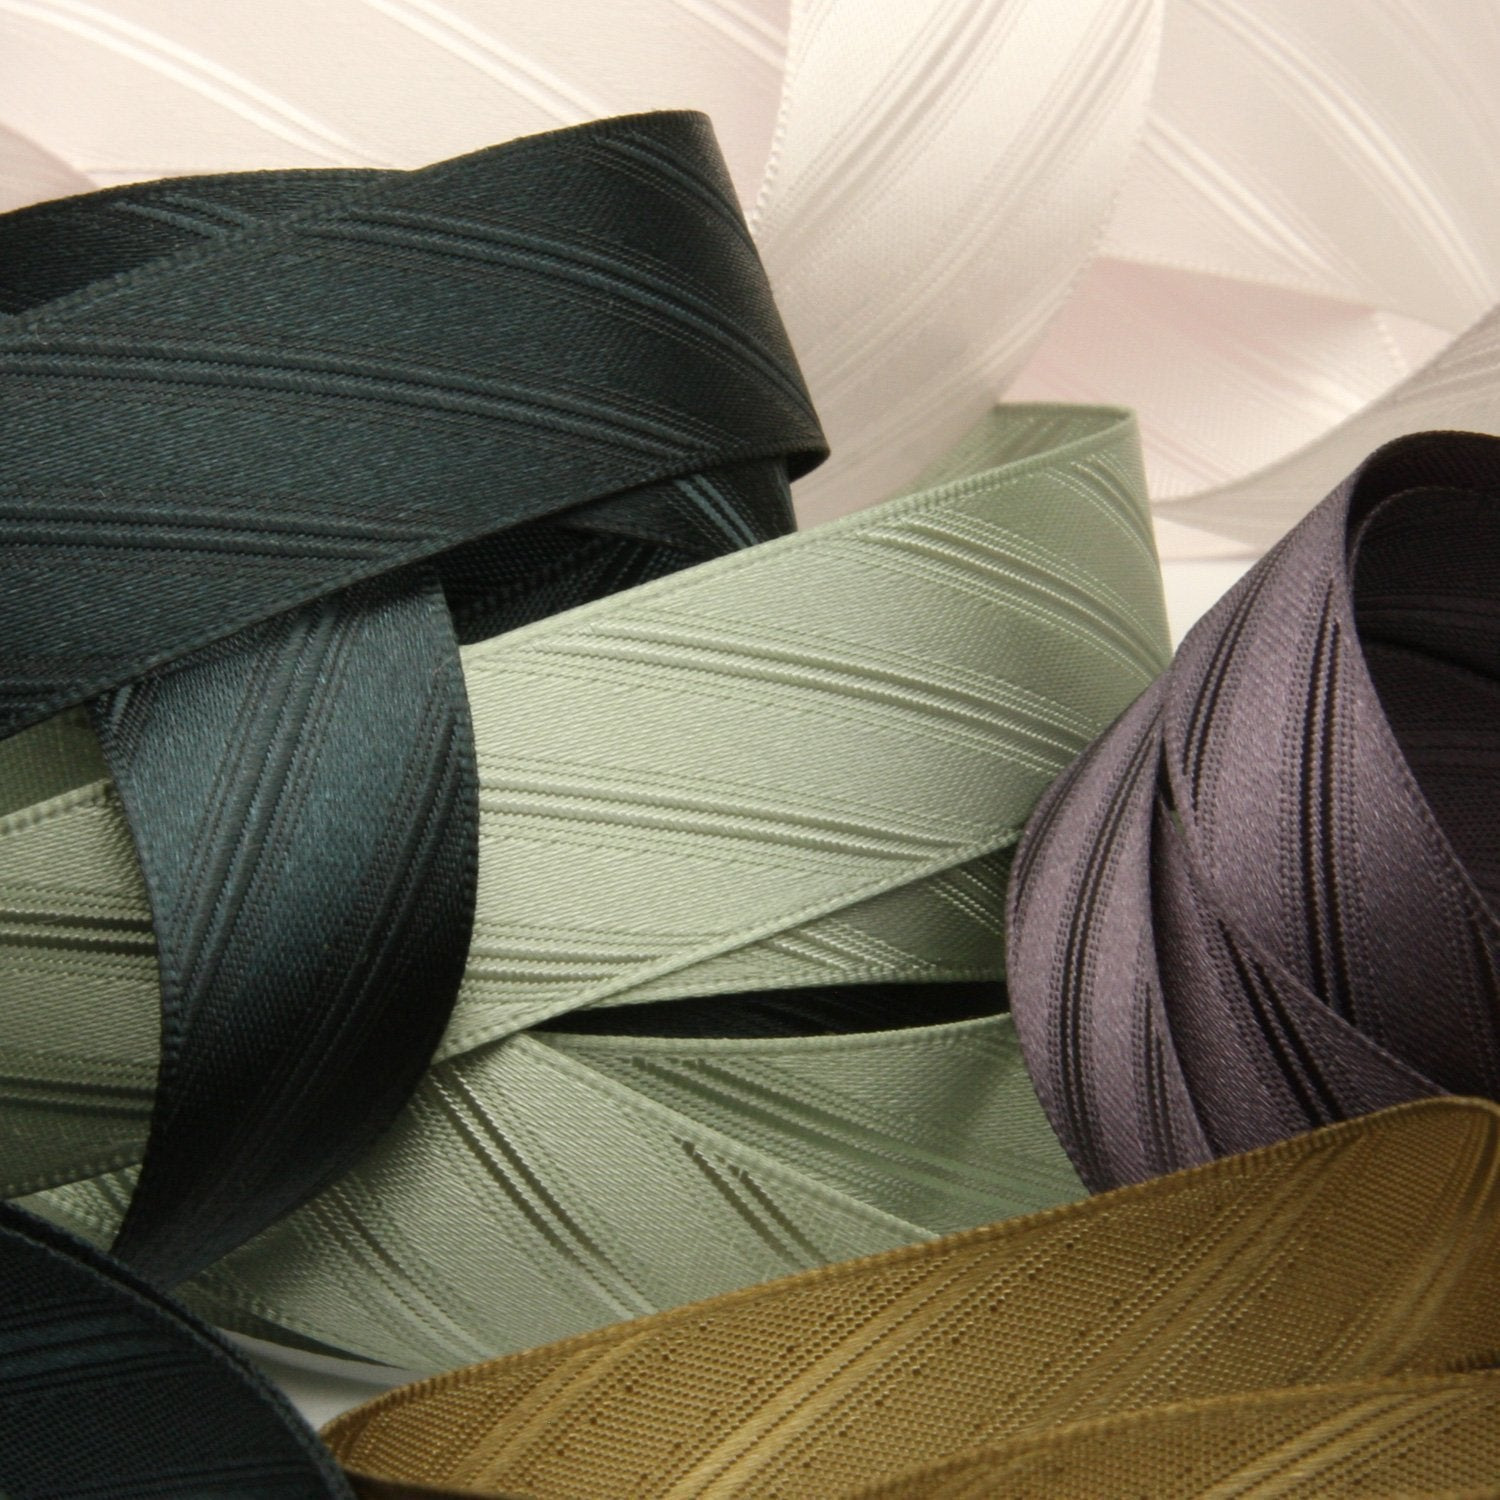 FUJIYAMA RIBBON [Wholesale] Twill Satin Ribbon 18mm 30 Meters Roll